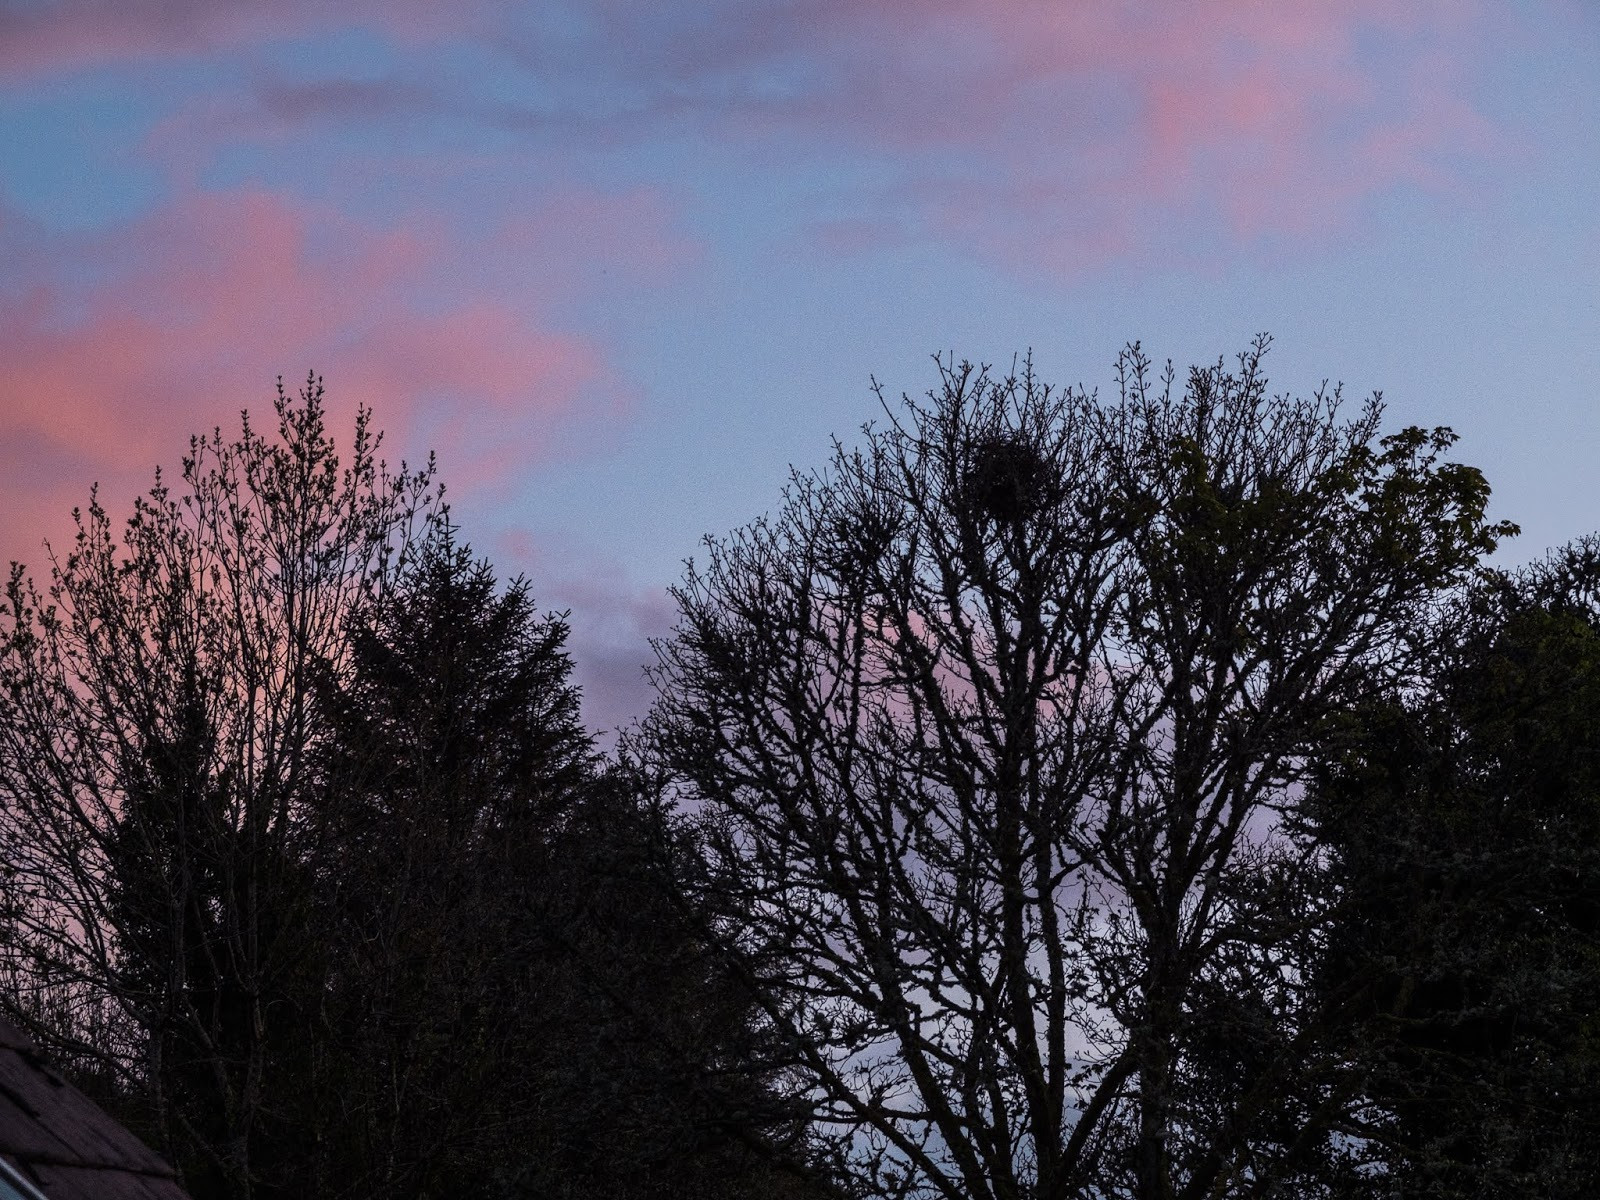 Gentle pink cloud on a light blue sky at sunset with big mature trees in the foreground.